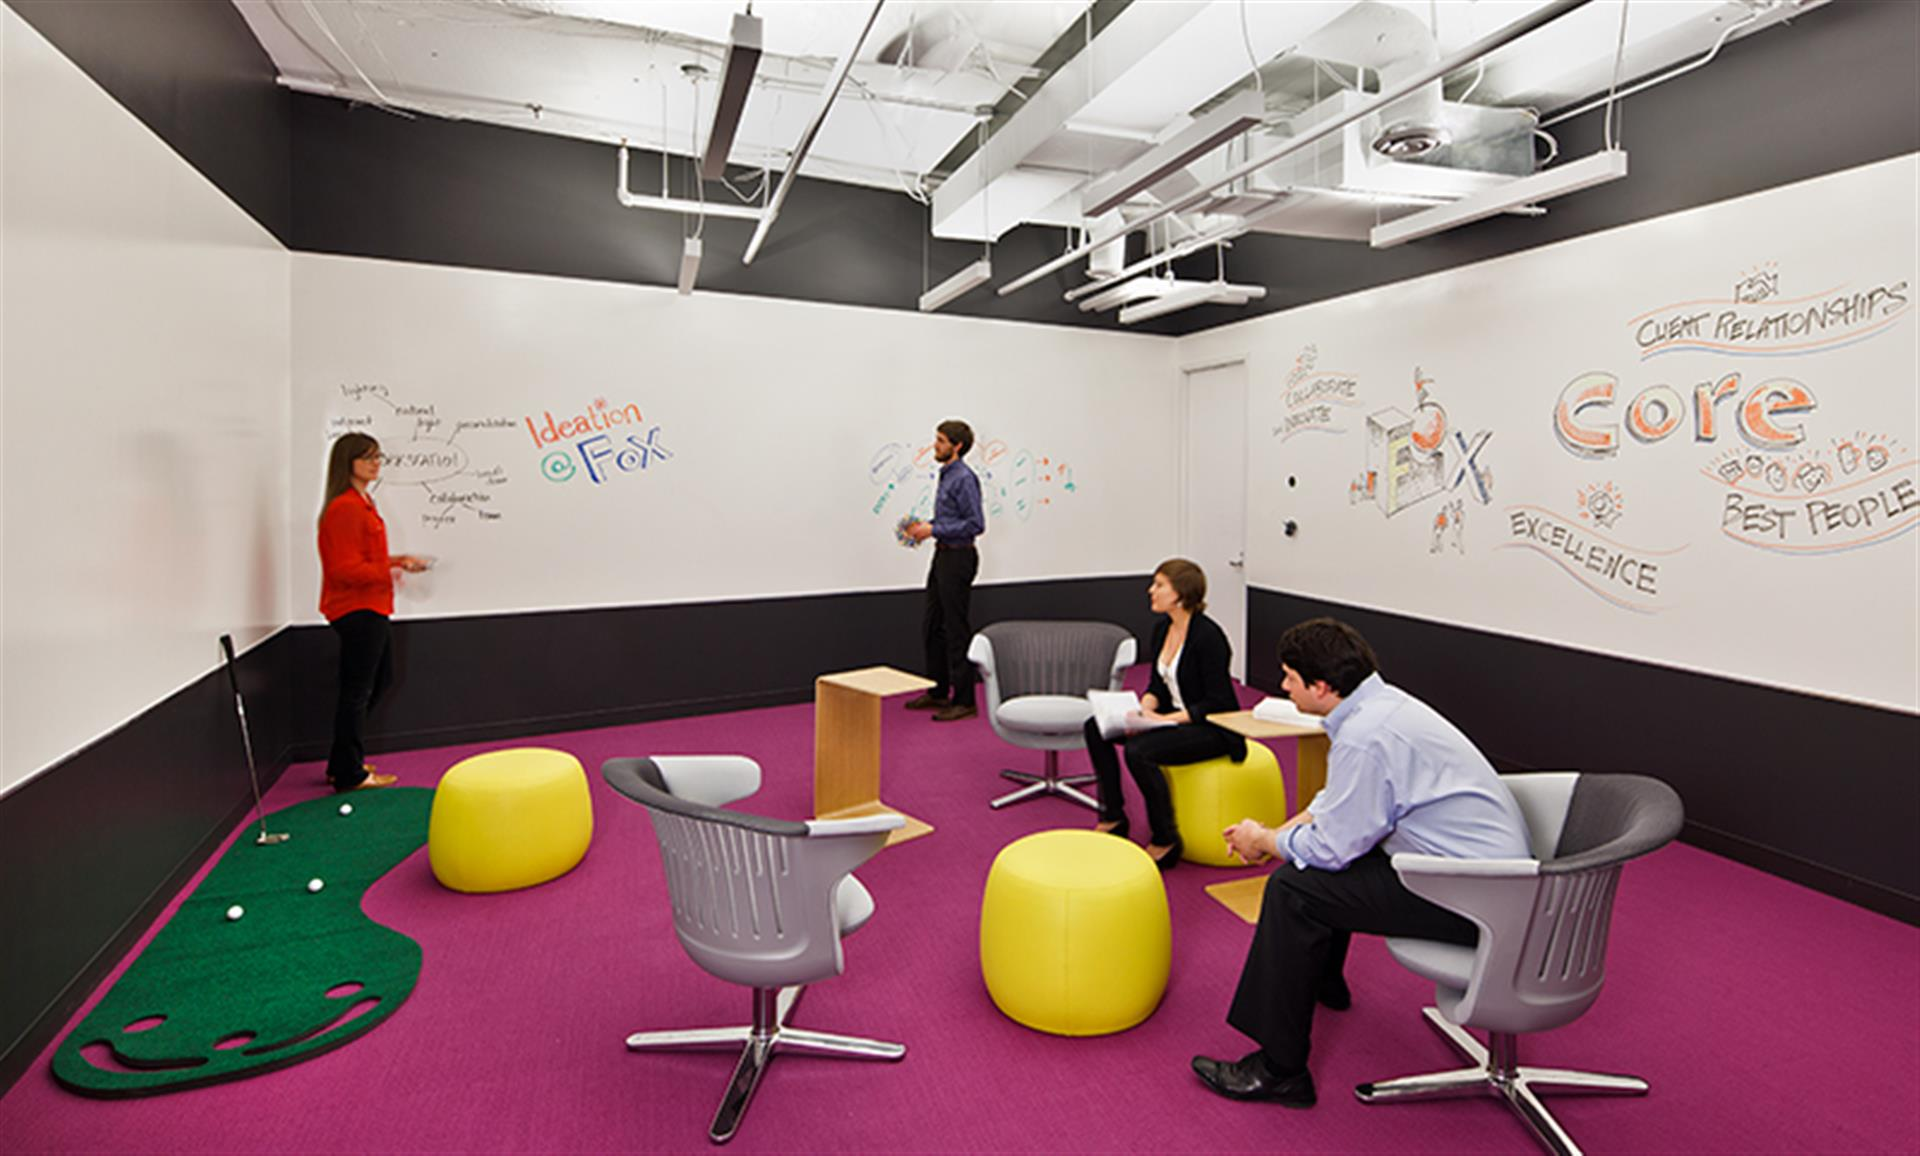 FOX Architects - The Ideation Room